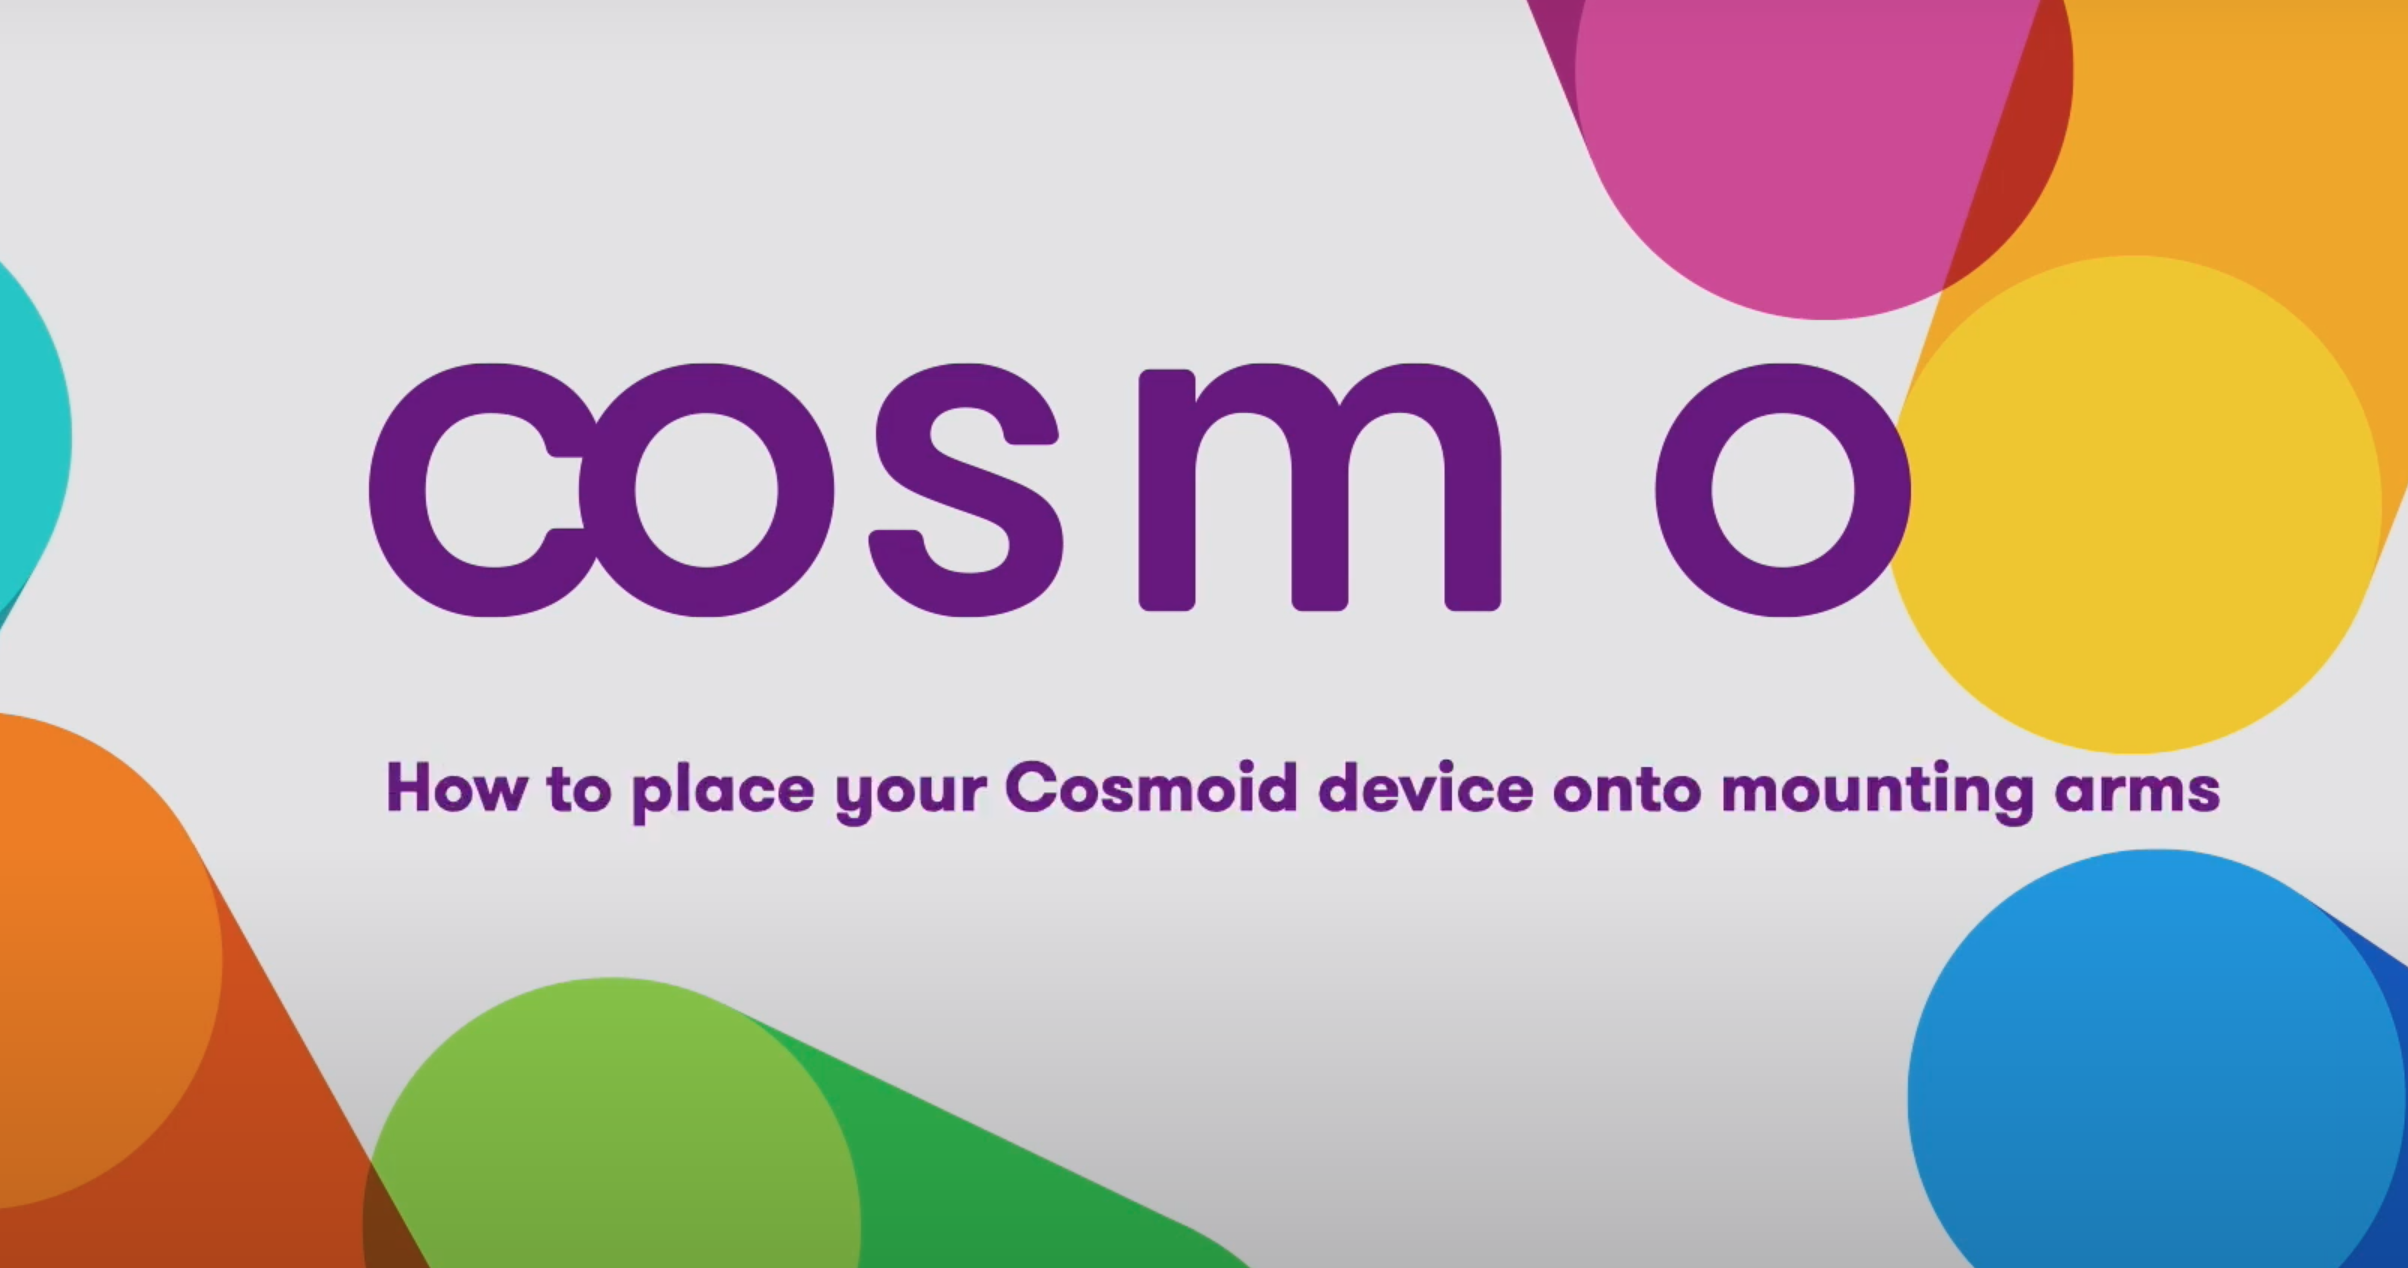 How to place your Cosmoid device onto mounting arms